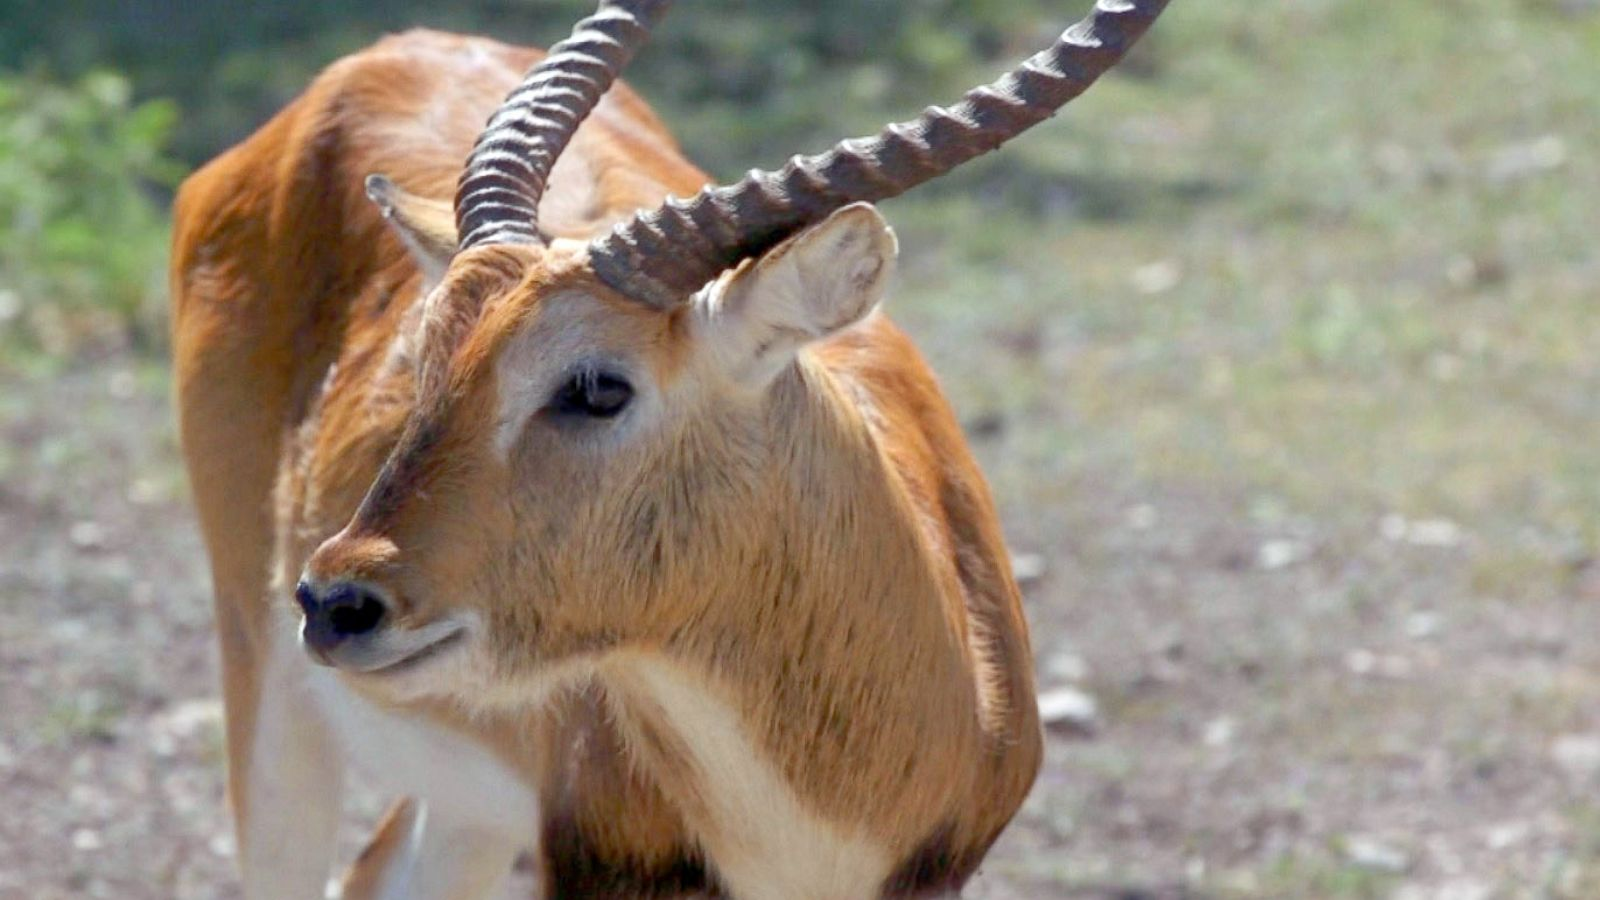 At some Texas ranches, hunting exotic animals is touted as a